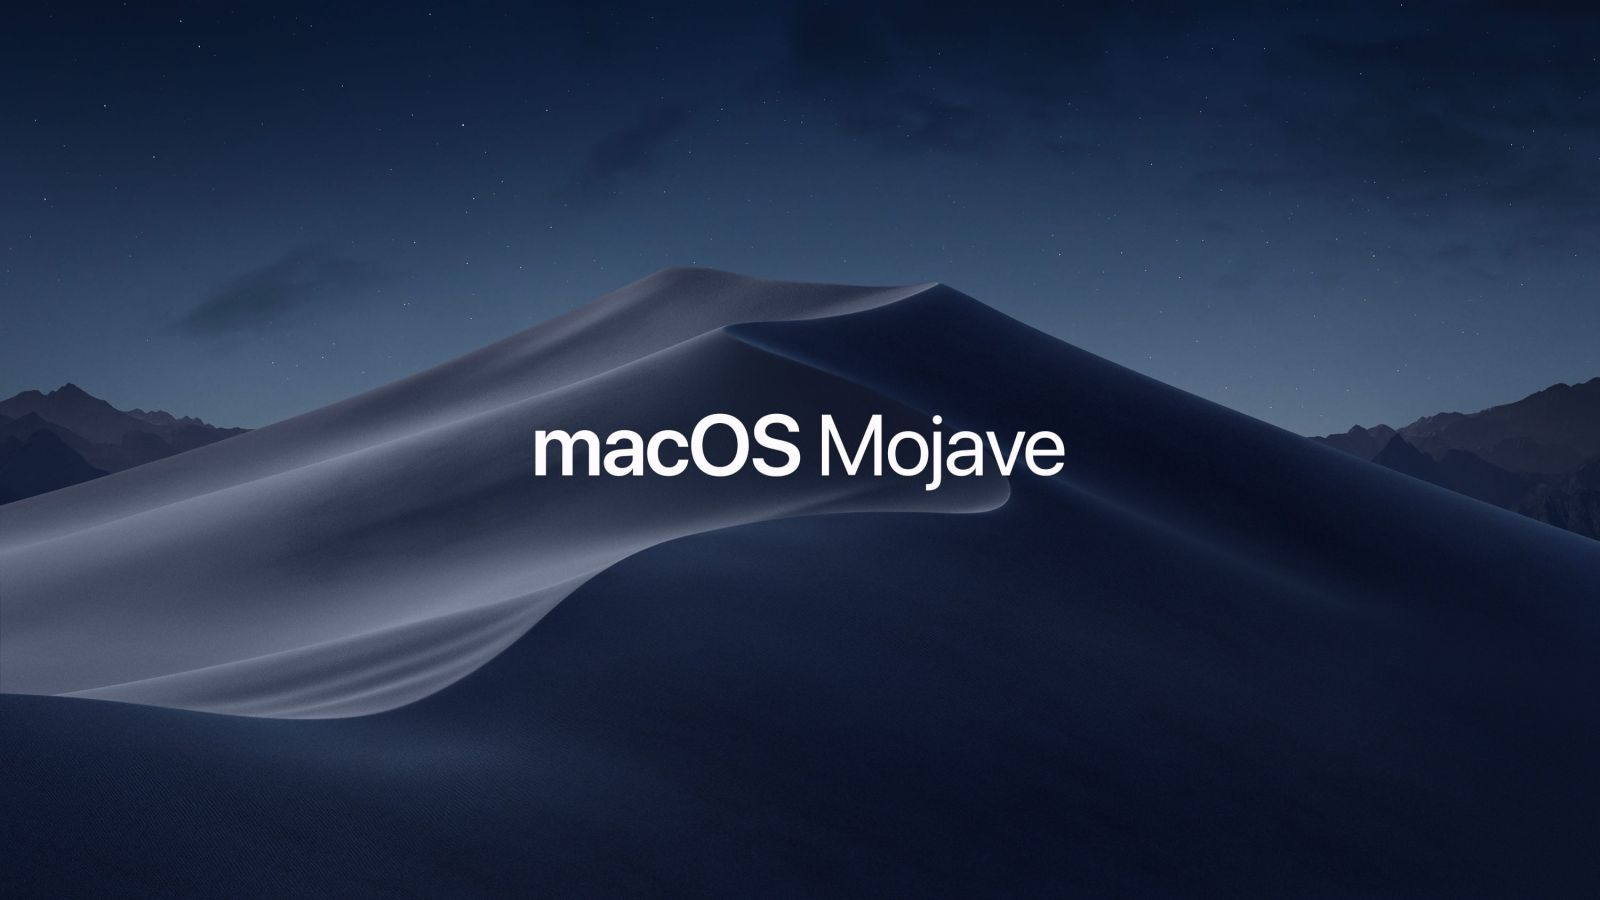 macOS Mojave night background